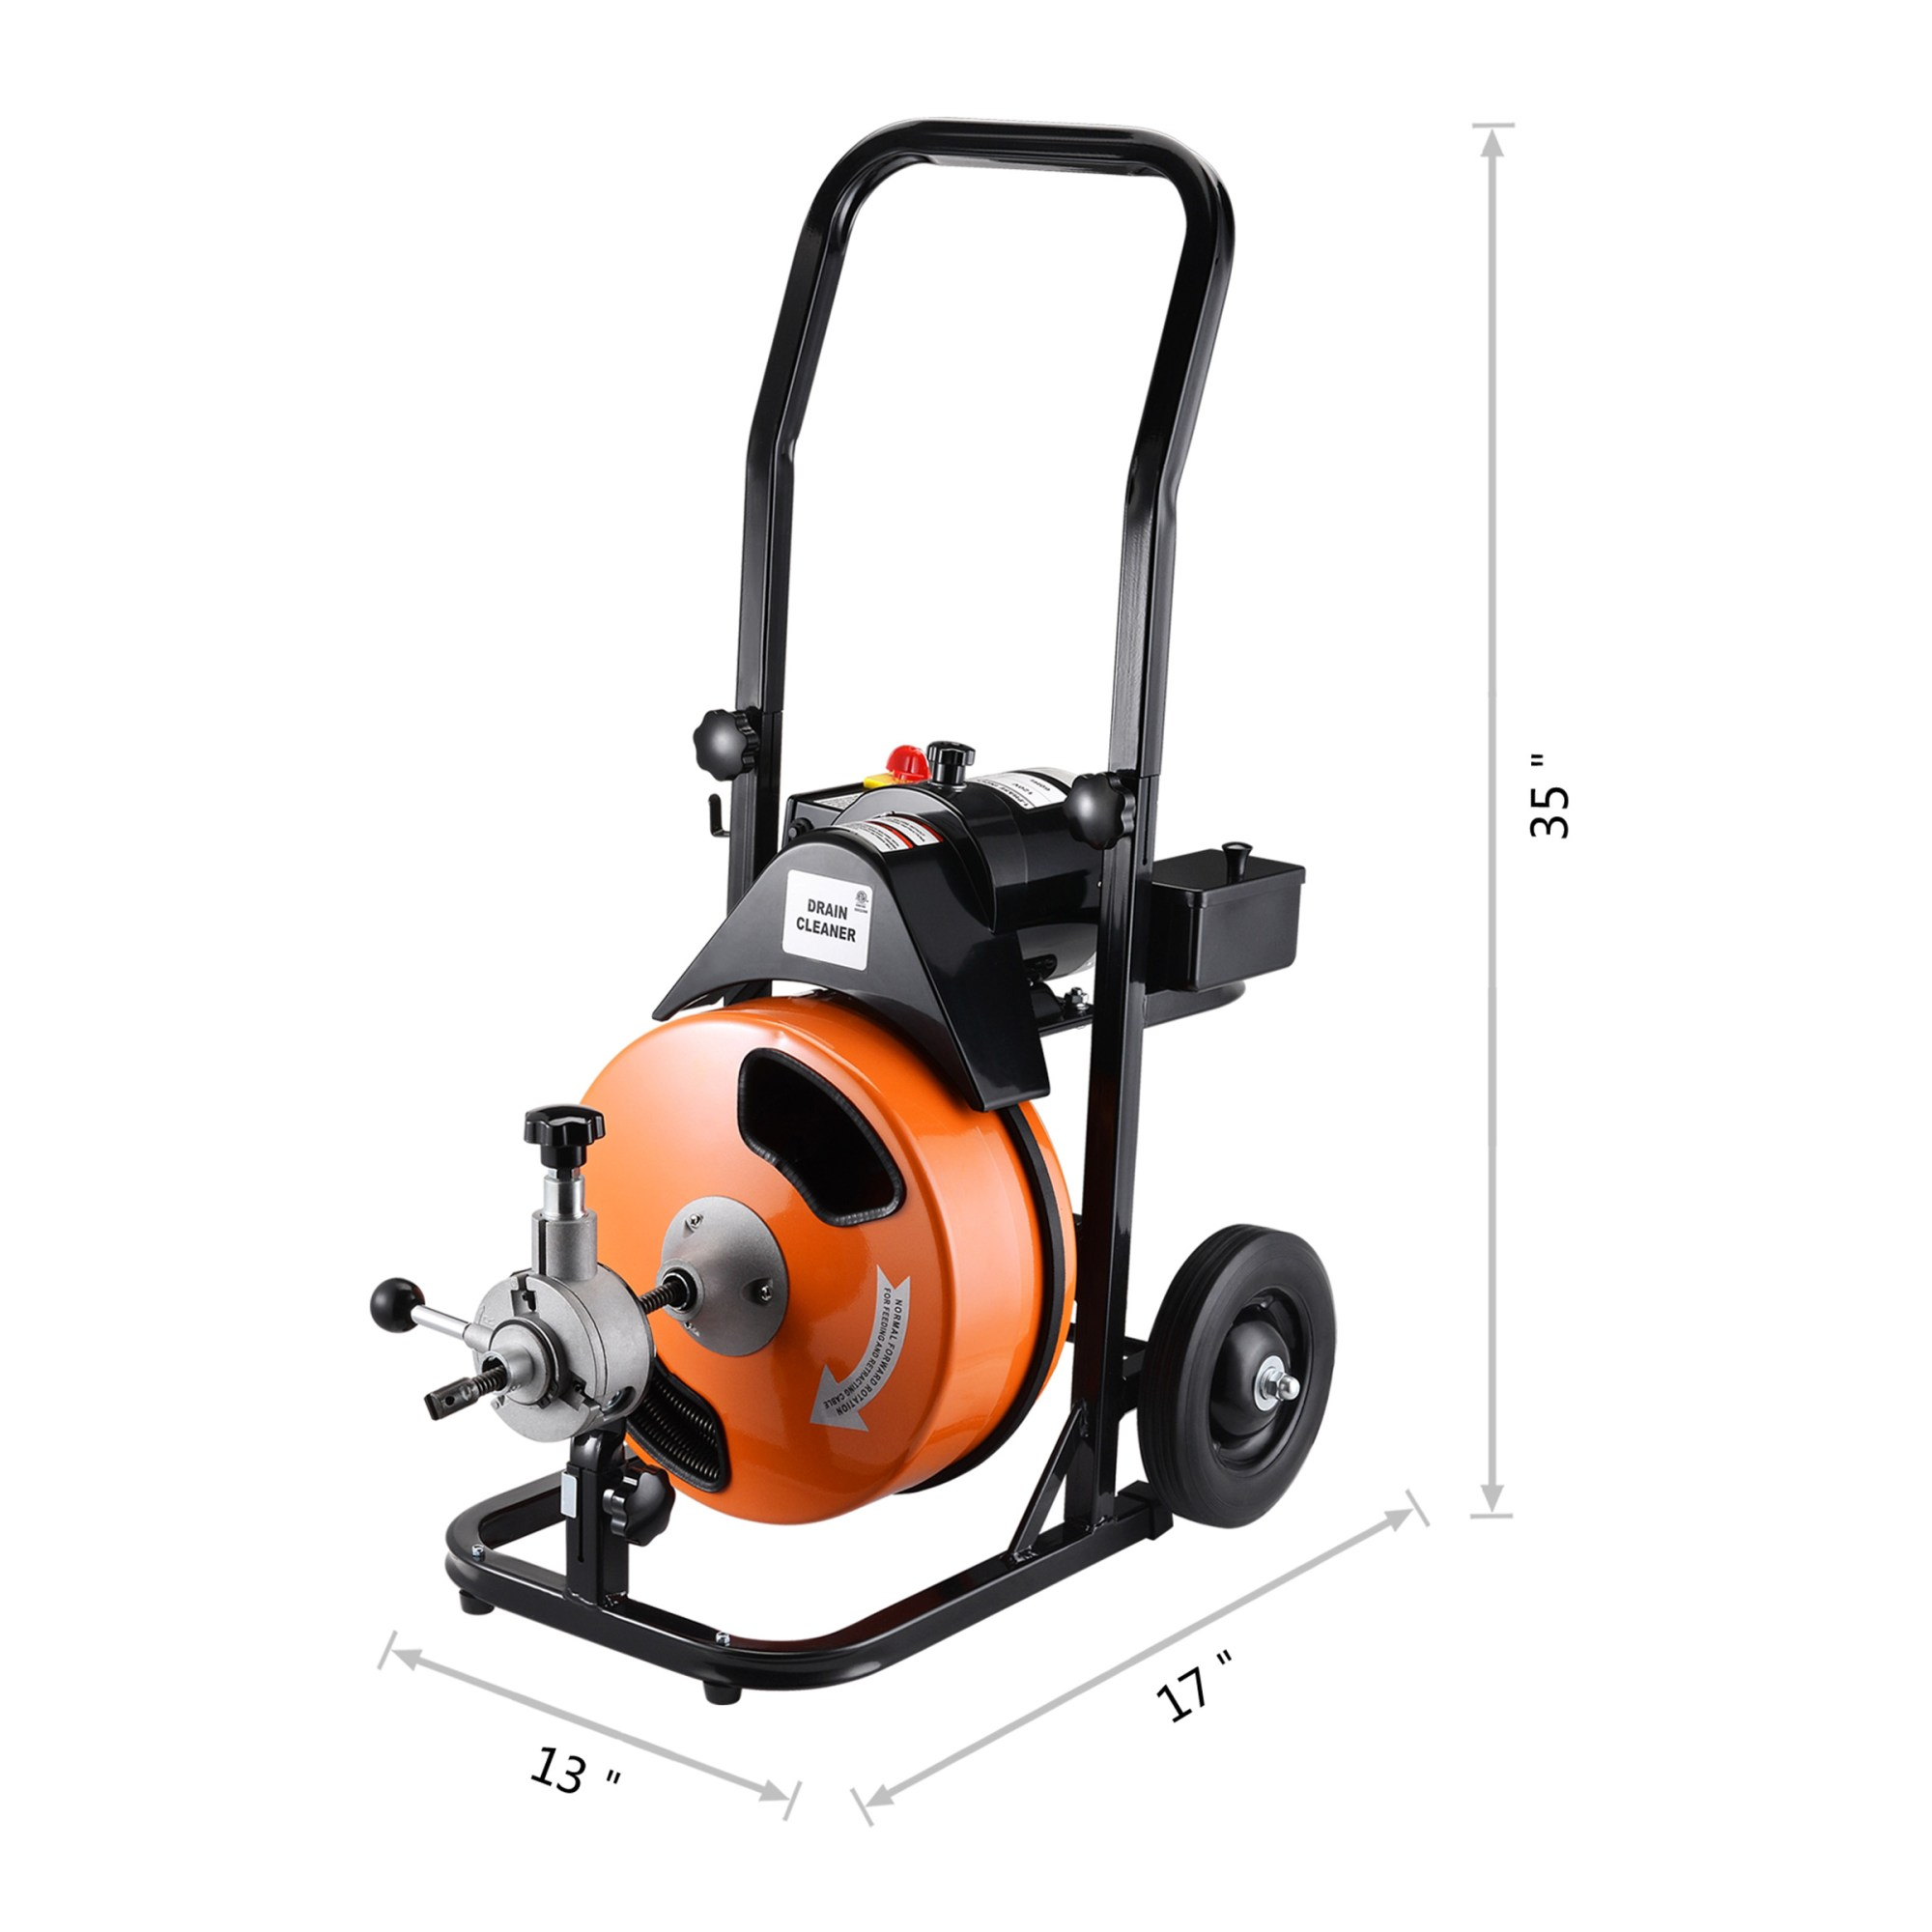 hight resolution of drum power auger 1 2 by 50ft electric drain cleaner snake compact with built in gfci for pipes 2 in diameter to 4 plumbing snake by pentagon tool